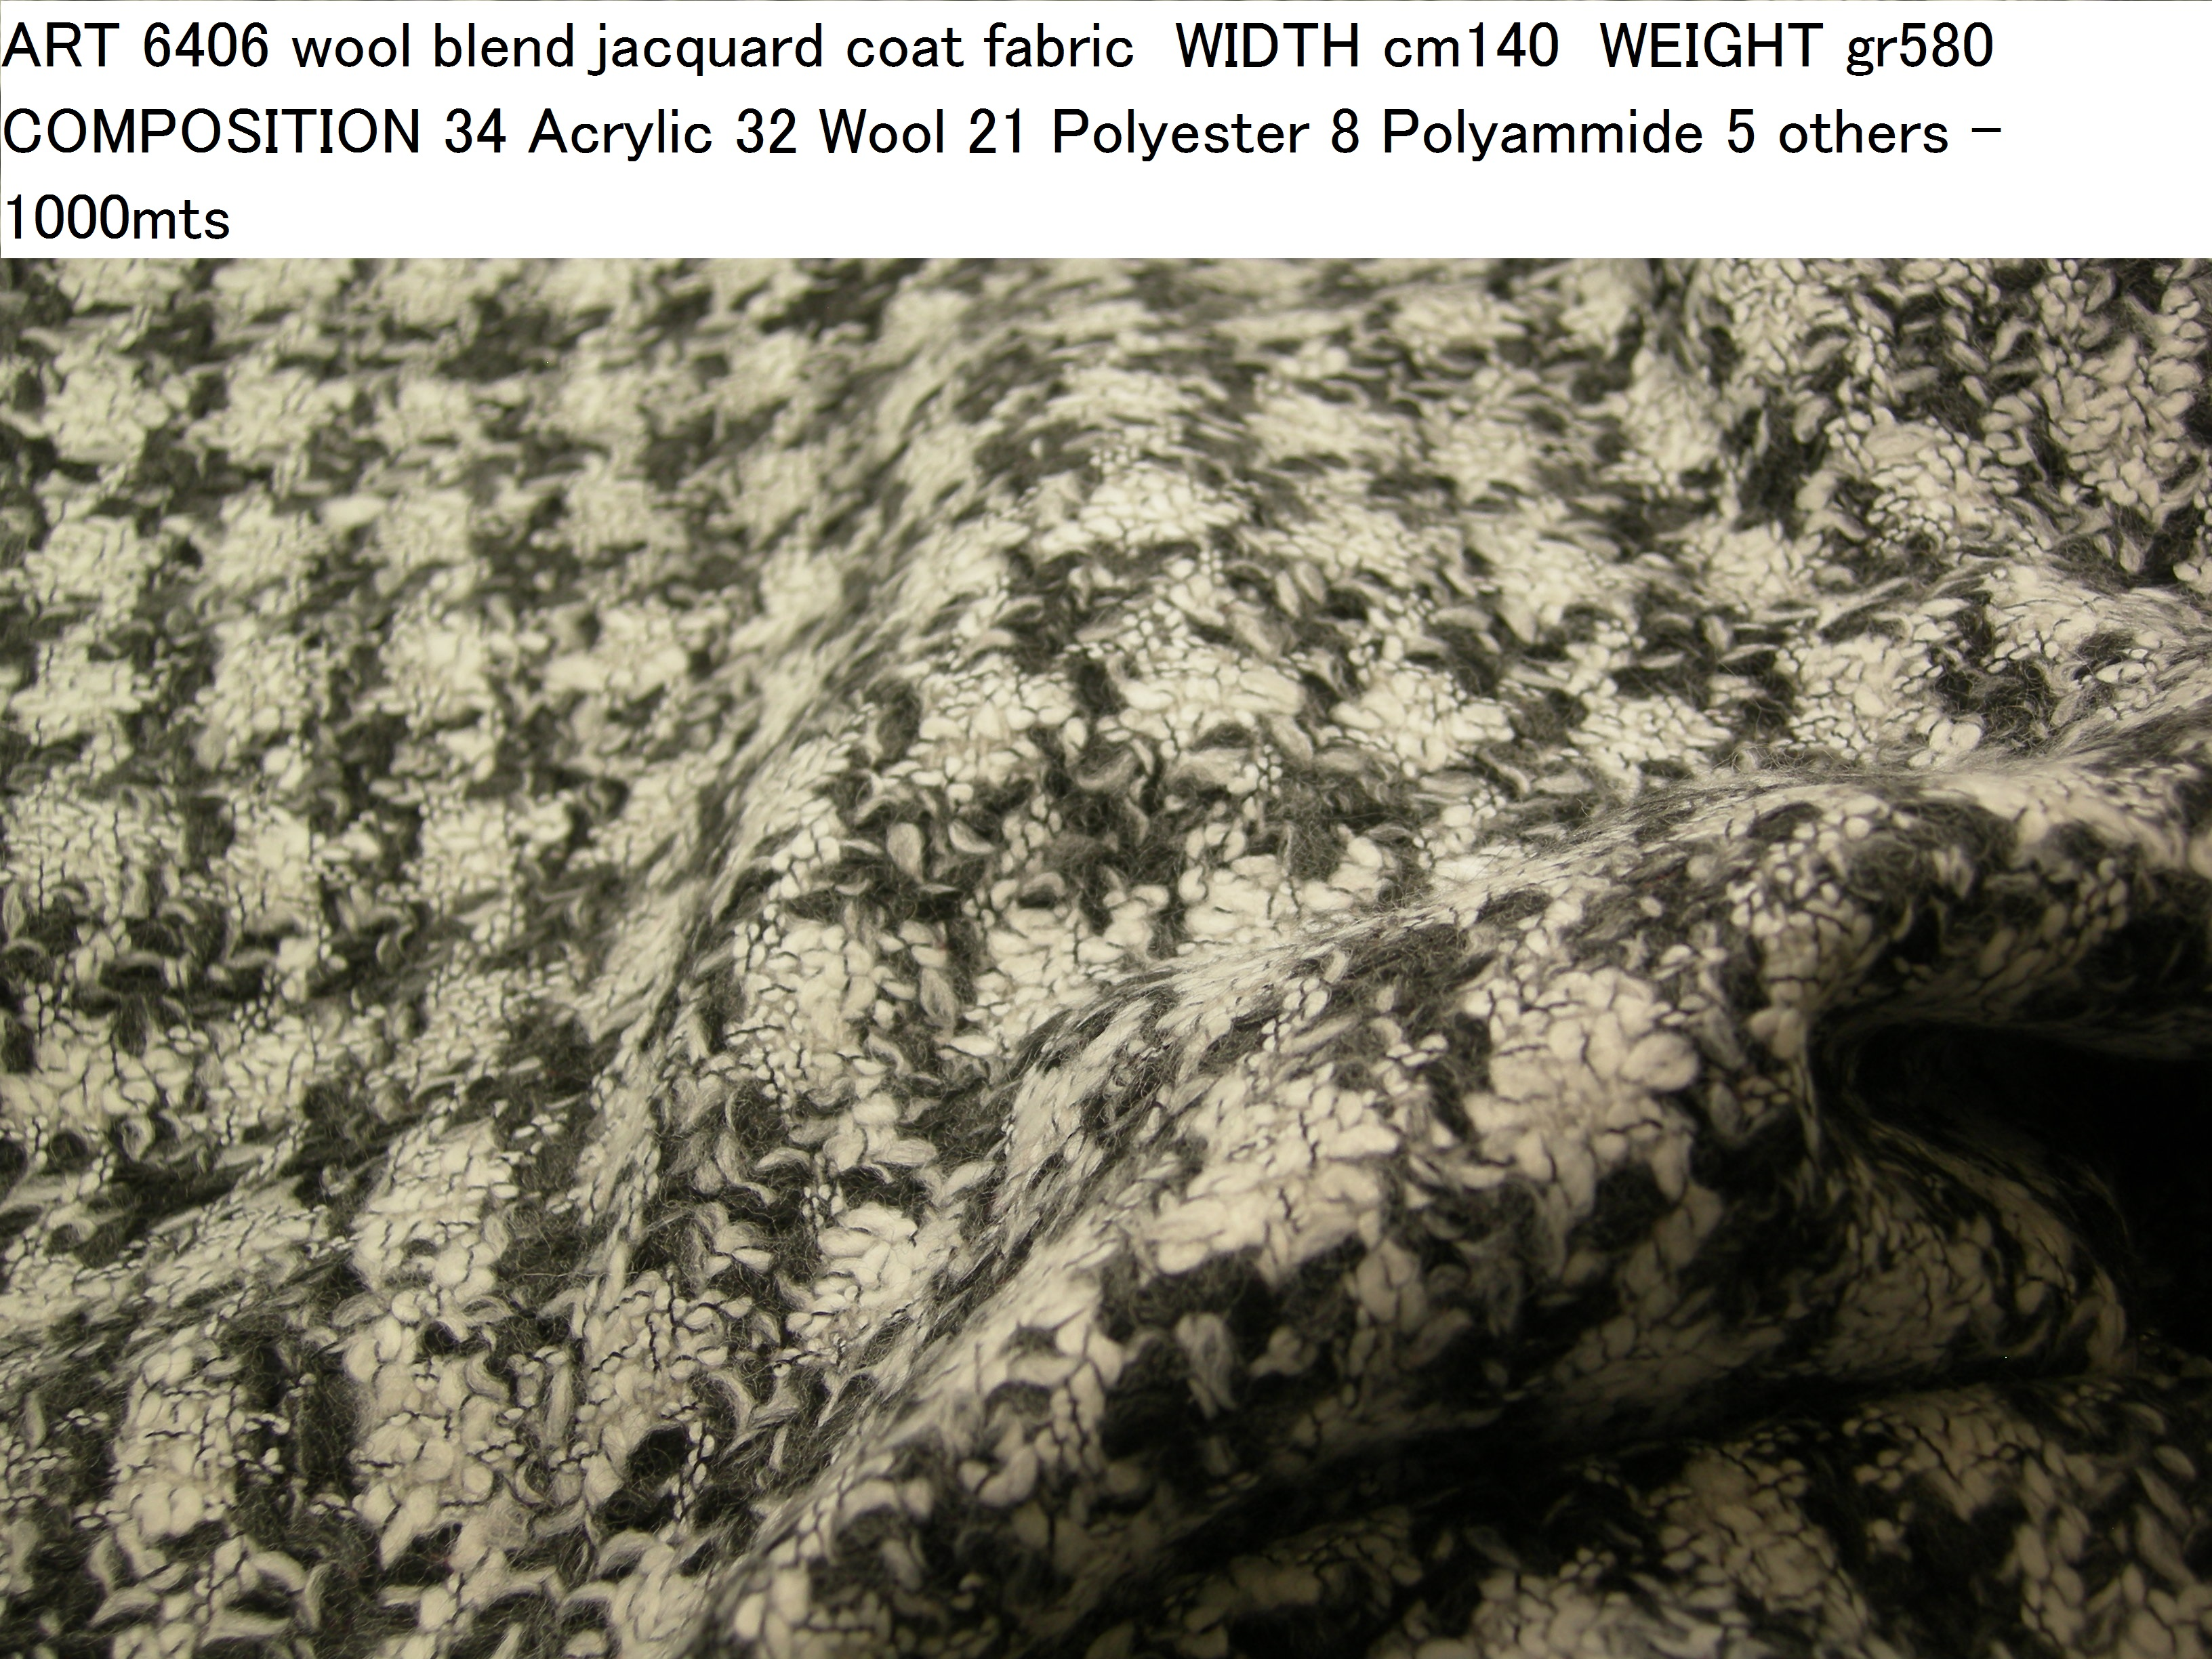 ART 6406 wool blend jacquard coat fabric WIDTH cm140 WEIGHT gr580 COMPOSITION 34 Acrylic 32 Wool 21 Polyester 8 Polyammide 5 others - 1000mts